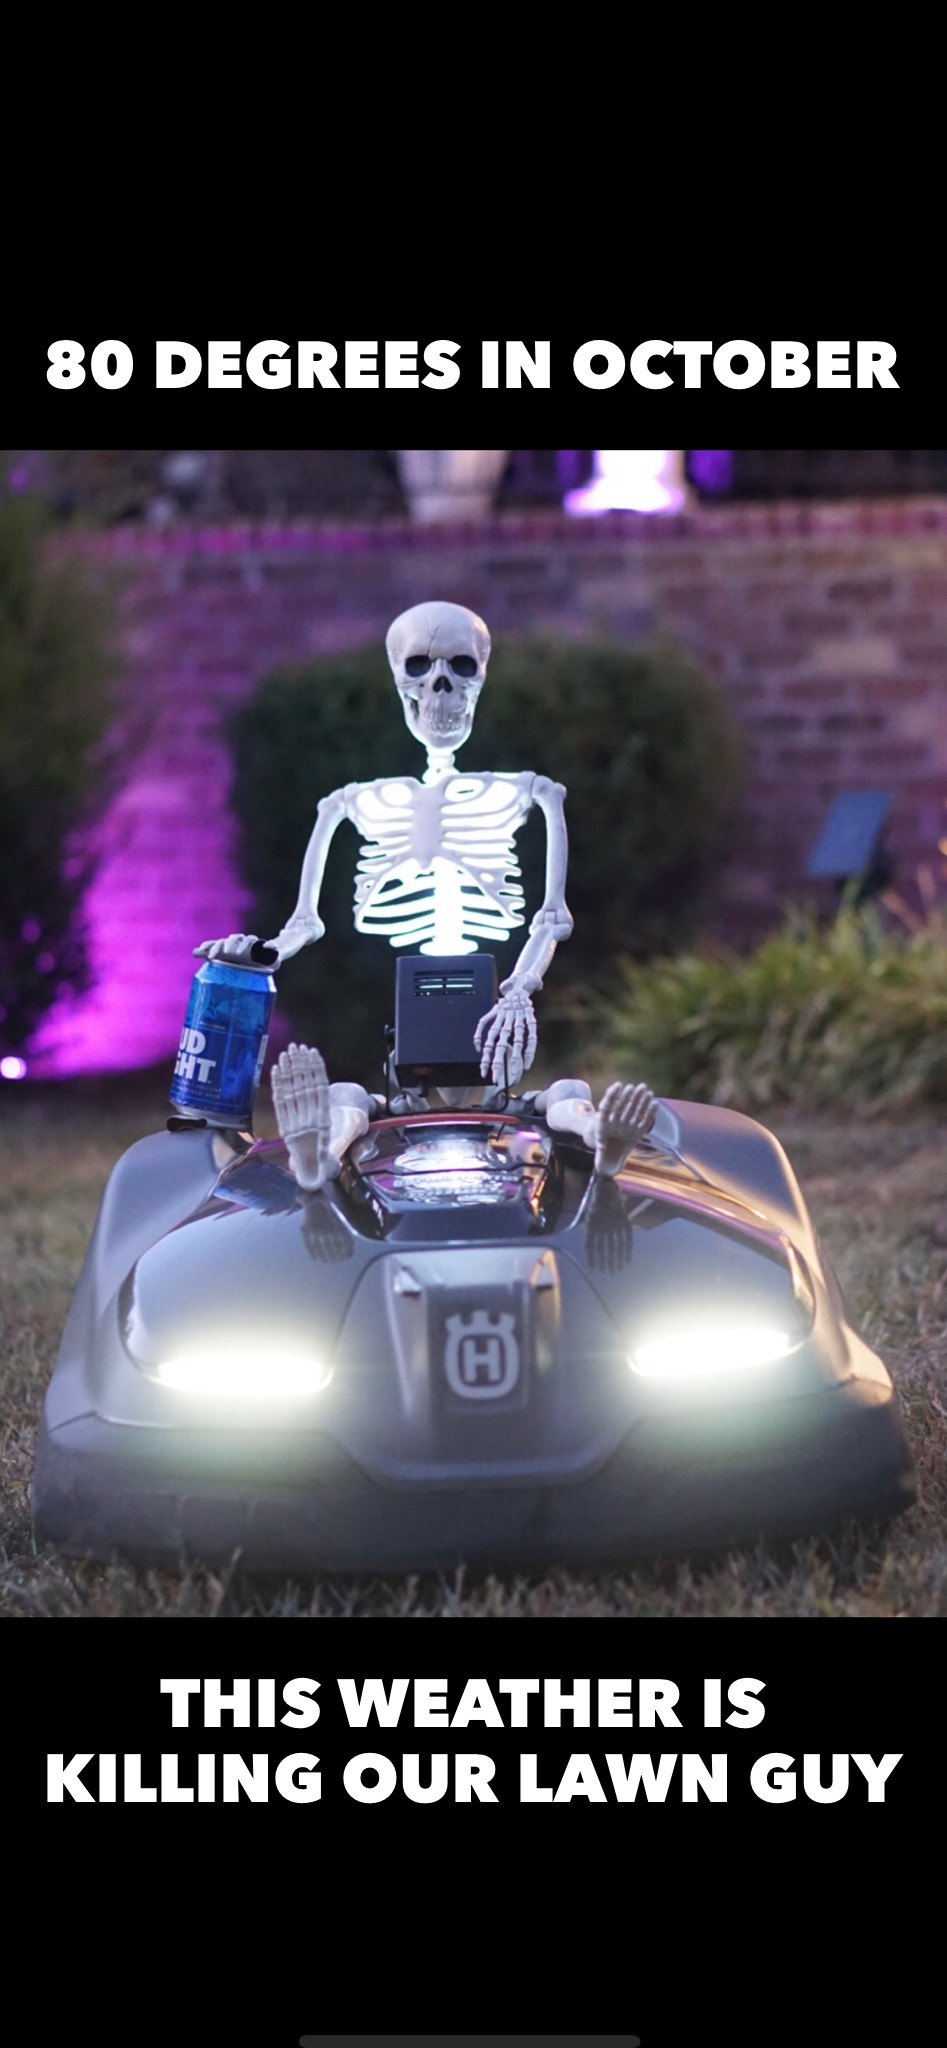 Halloween Memes - Skeleton Riding Robot Lawnmower -Husqvarna Automower blogger Misty Nelson @frostedevents